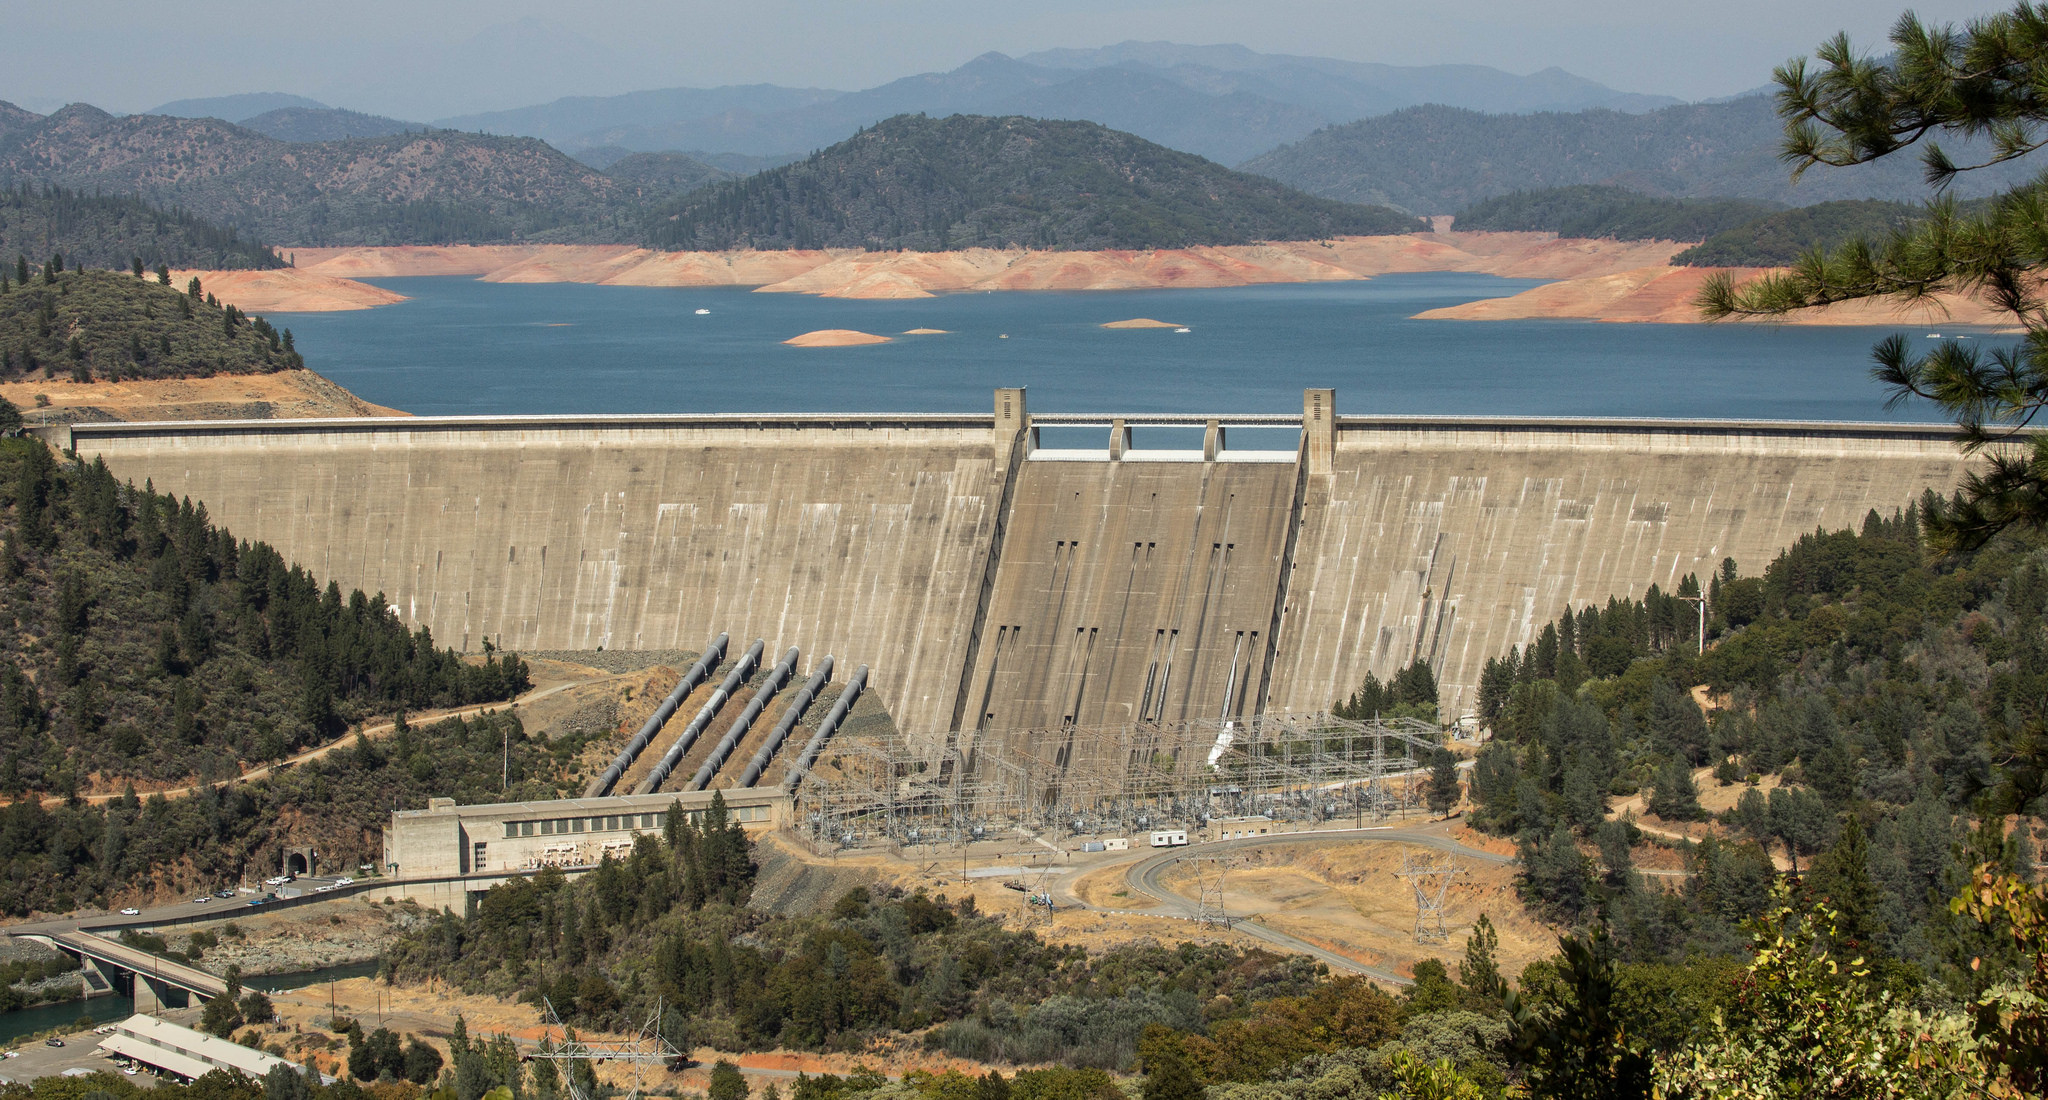 Drought Bill Aims To Build Dams To Alleviate Water Shortages  U2014 High Country News